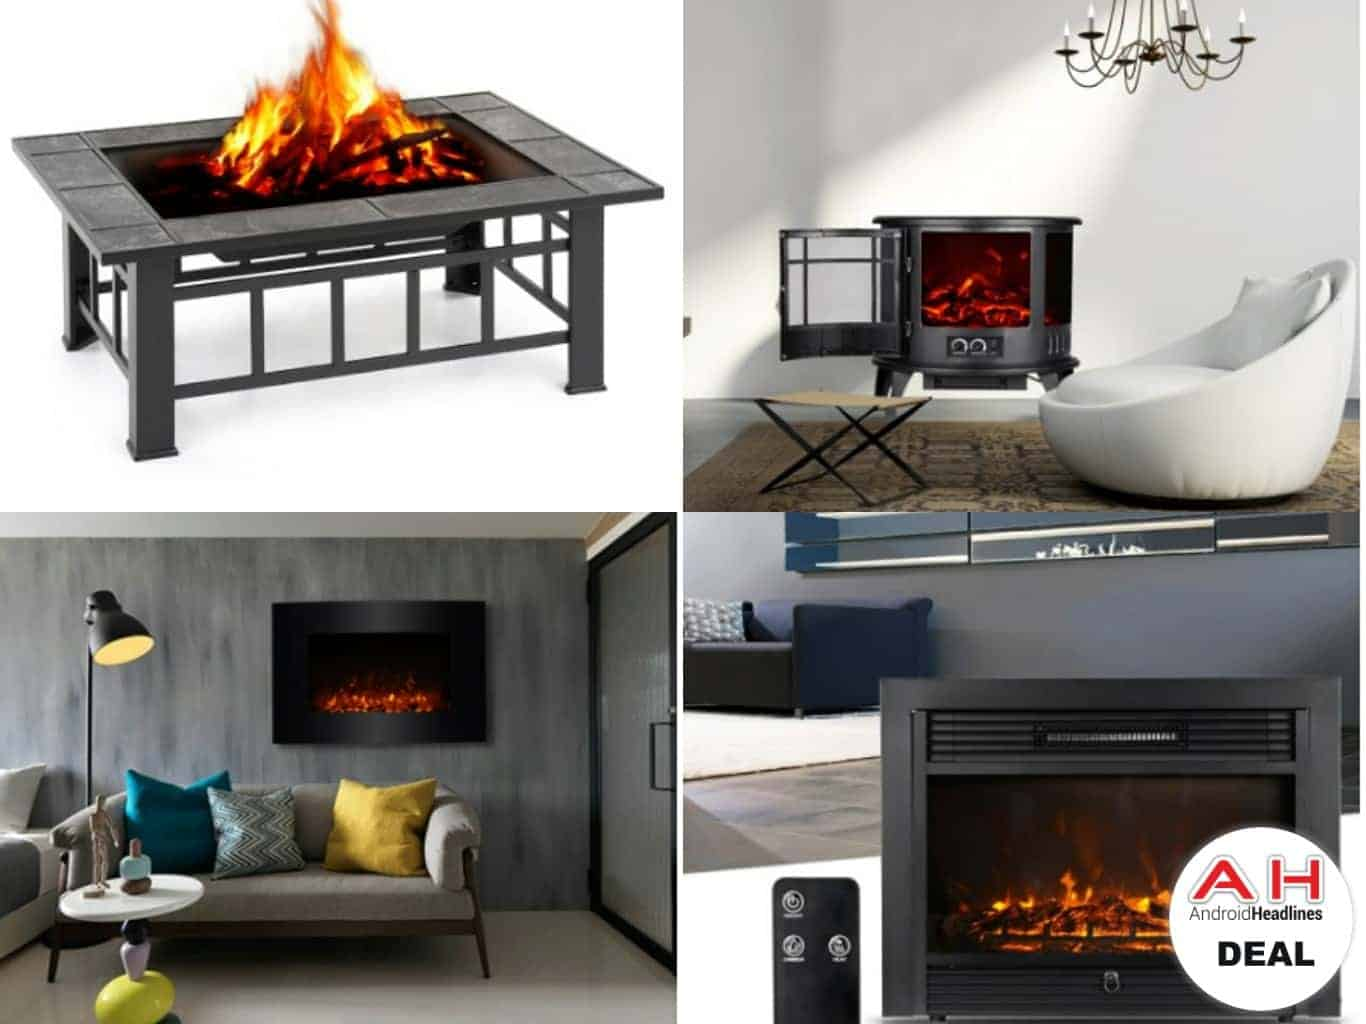 stands stand black on friday place fireplace electric tv with firepl sale